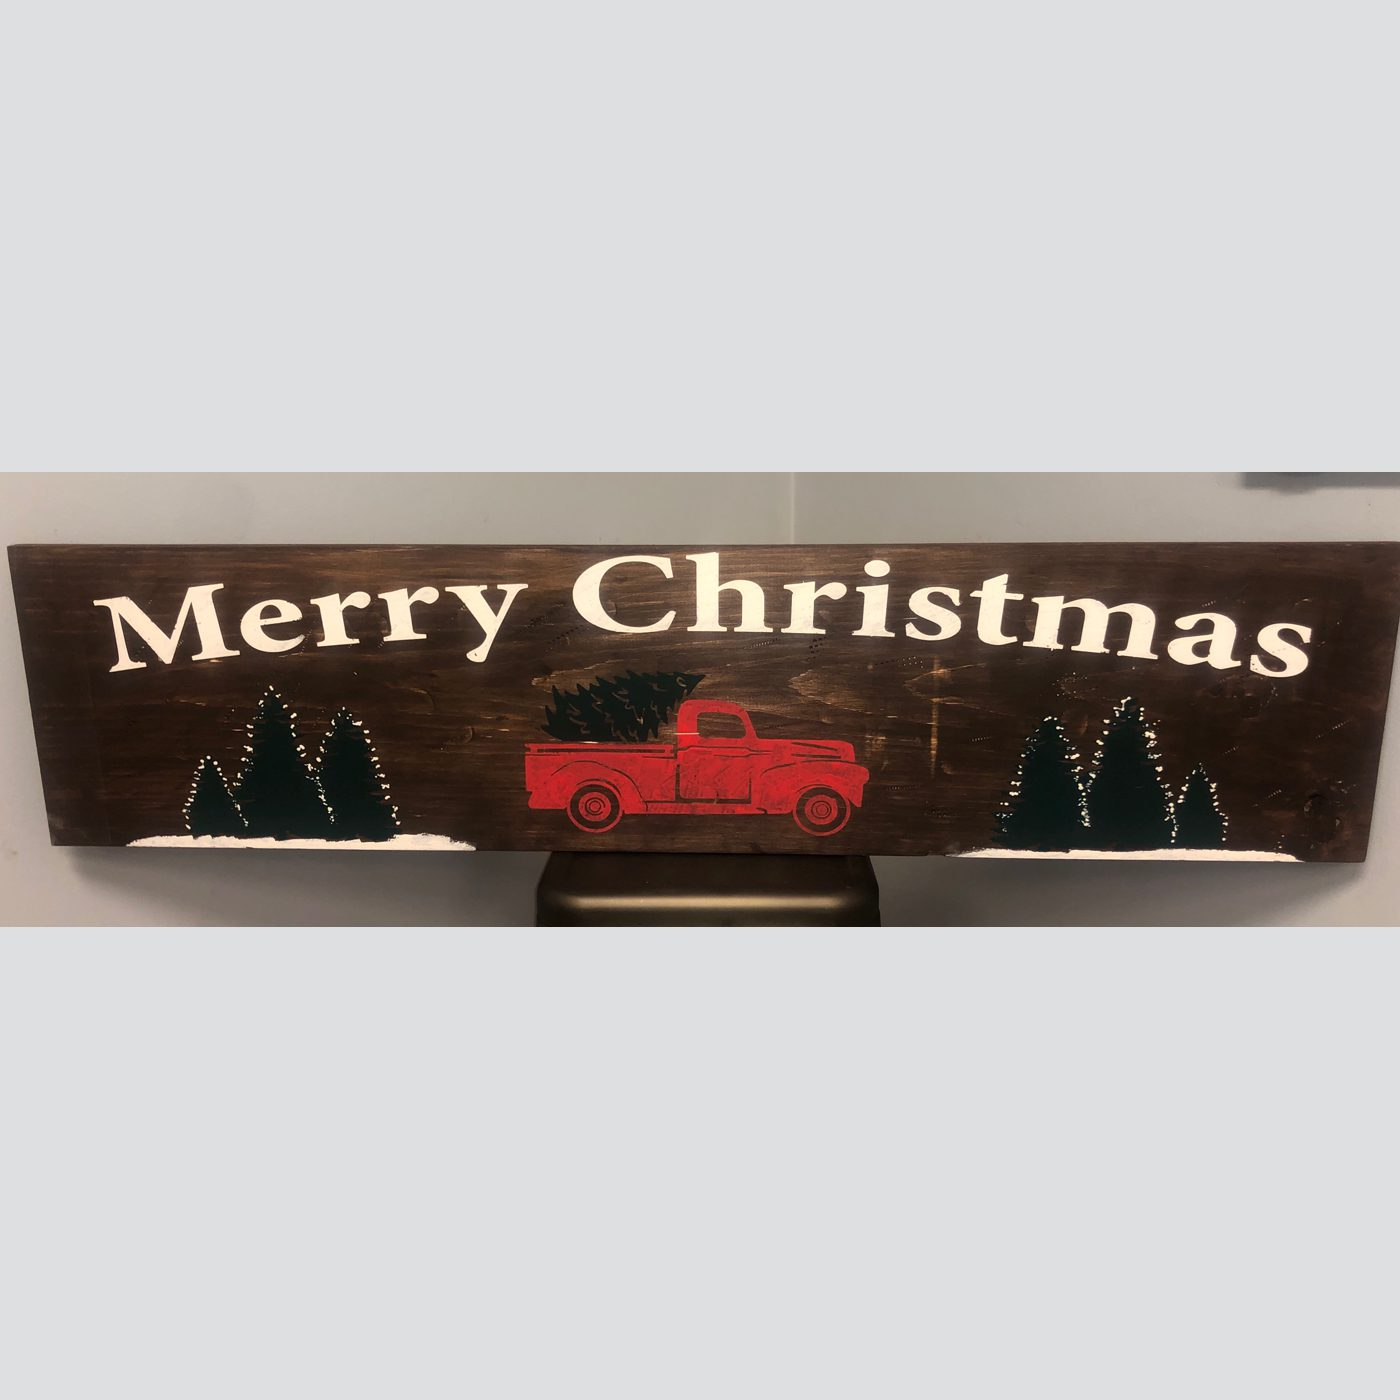 Merry Christmas with Truck DIY wood sign